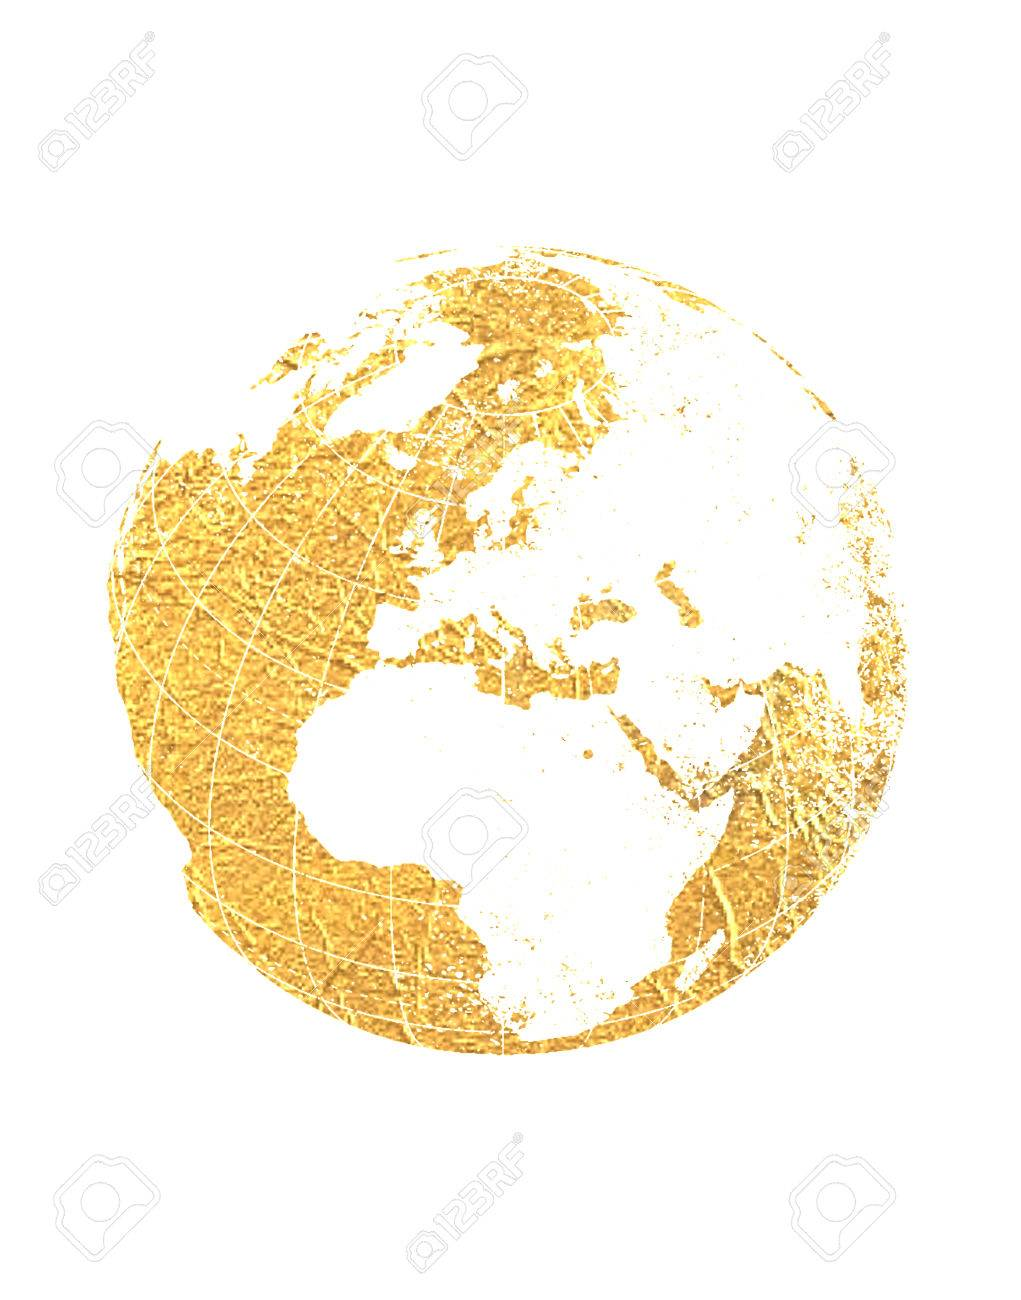 Gold foil world map globe stock photo picture and royalty free gold foil world map globe stock photo 32769512 gumiabroncs Gallery